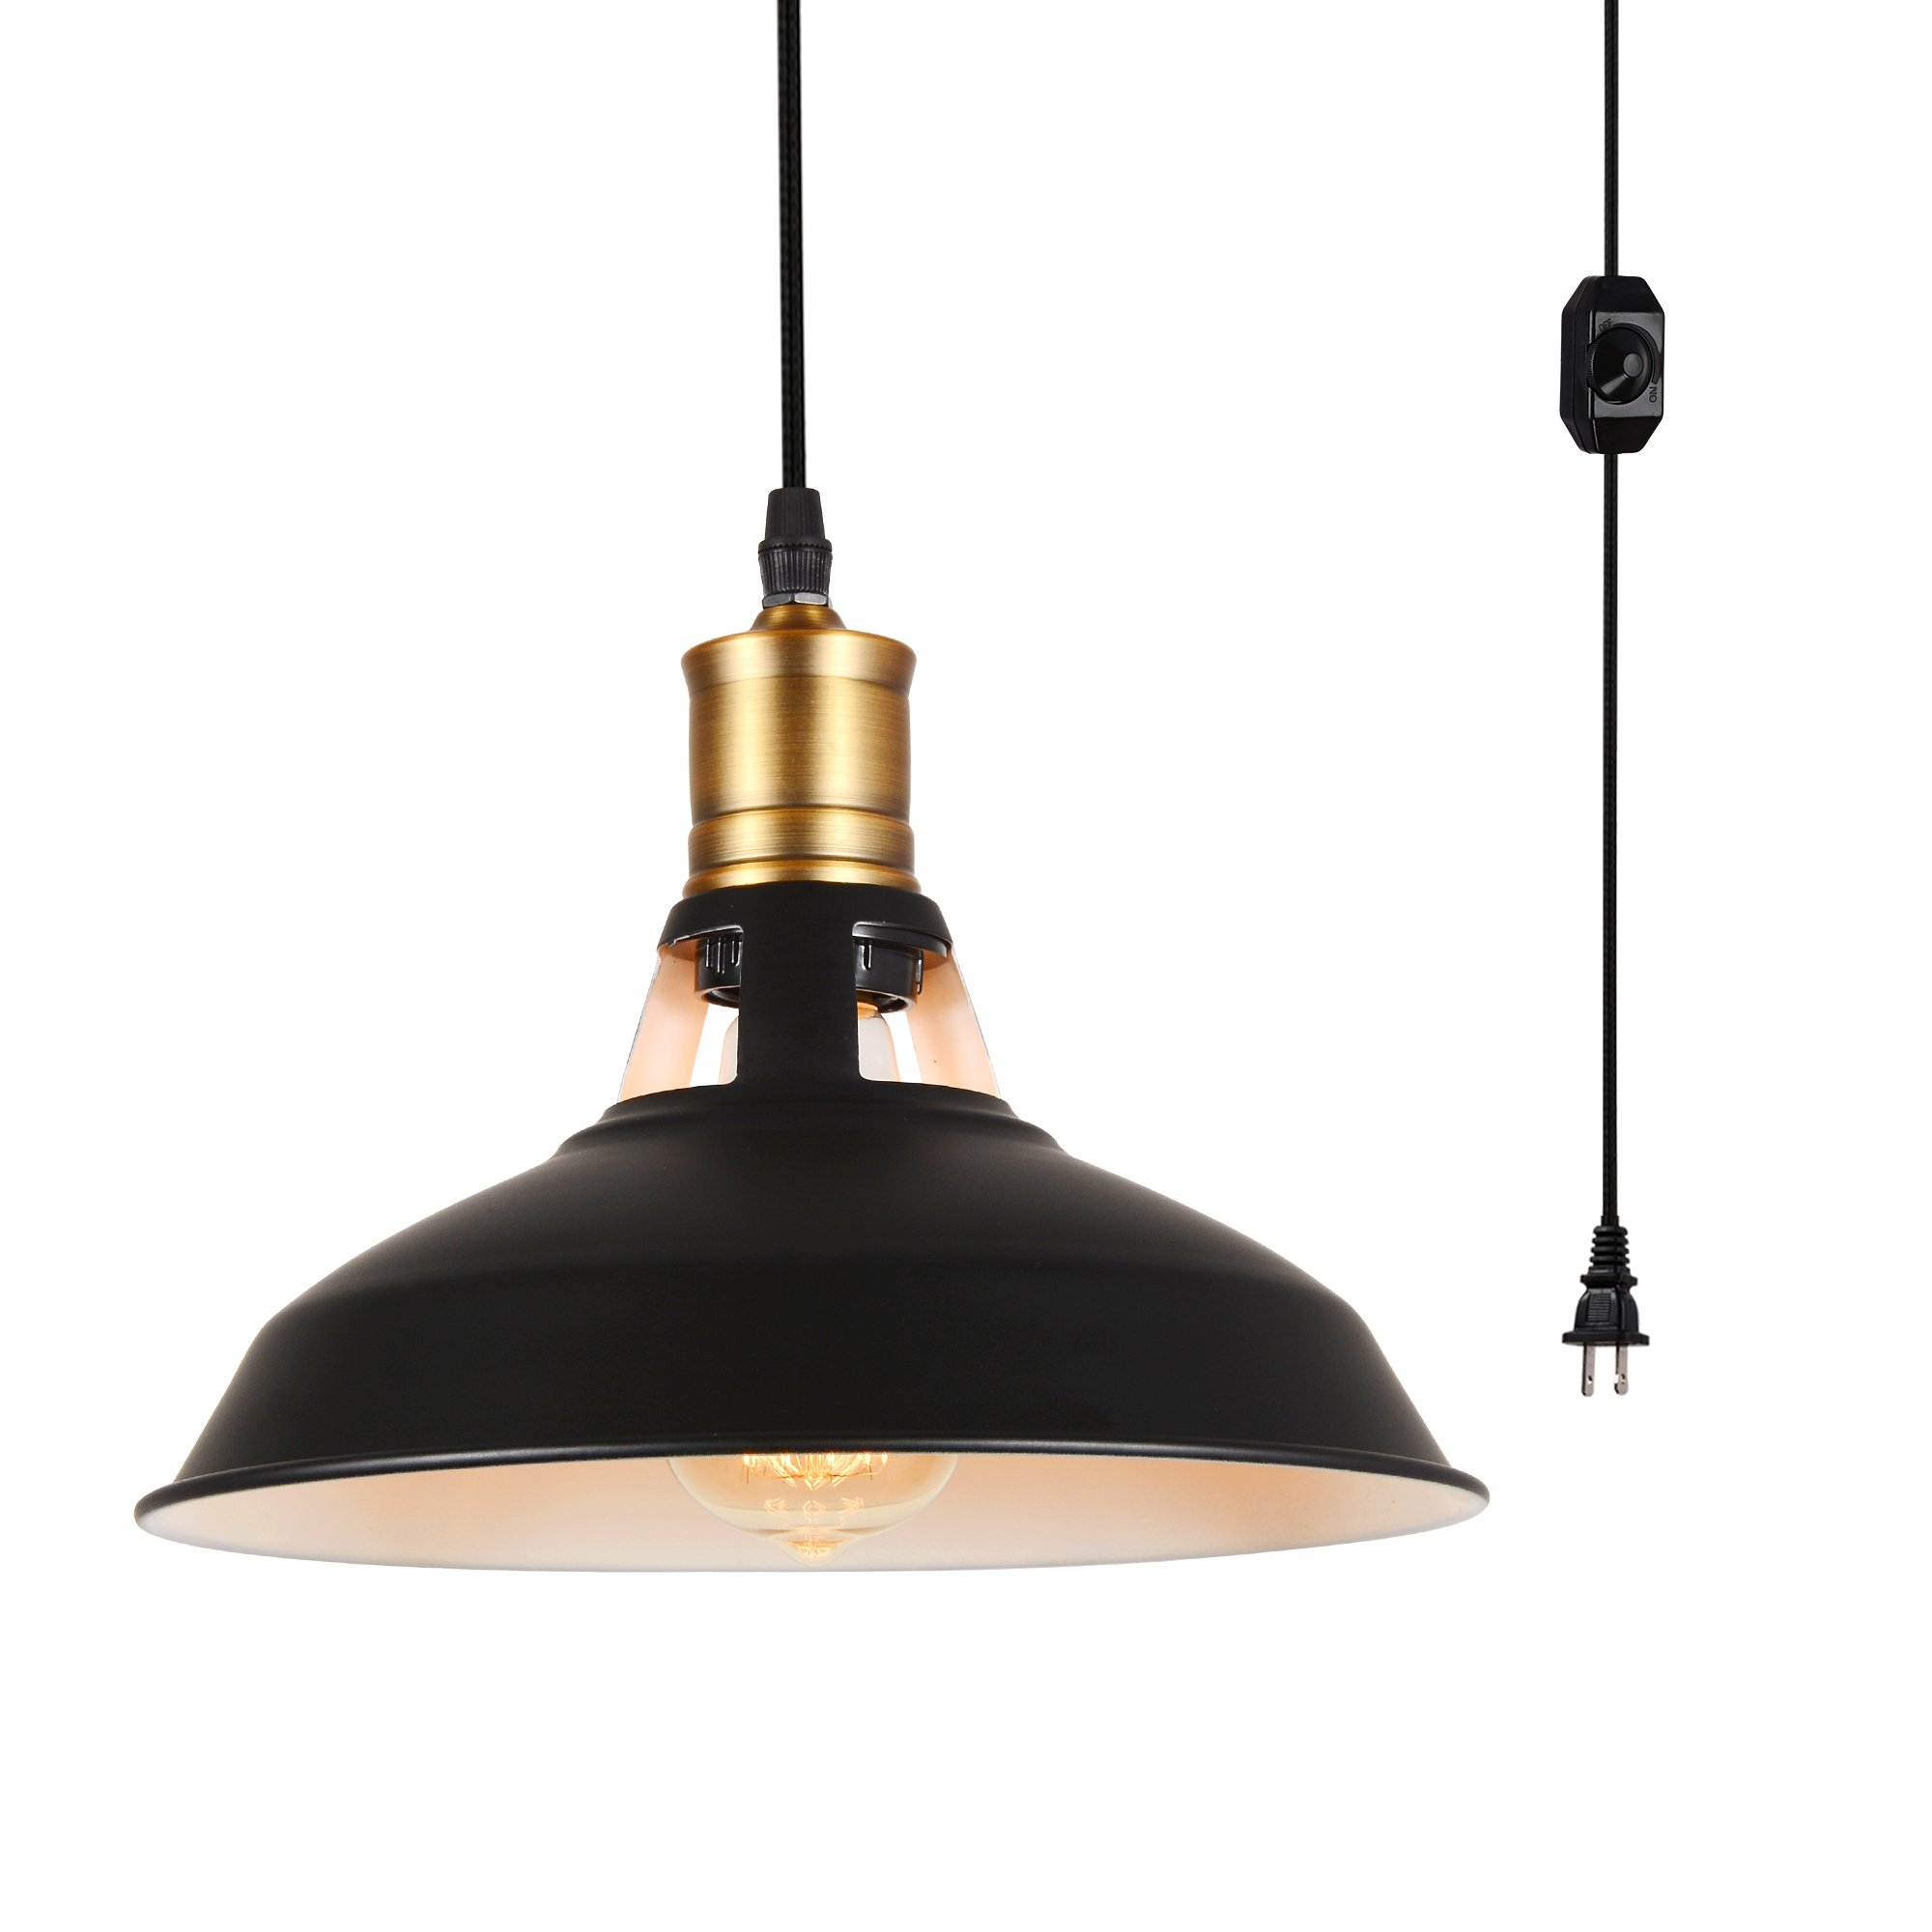 HMVPL Industrial Plug-in Pendant Lighting Fixtures with long Hanging Cord and Dimmer Switch, Vintage Farmhouse Hanging Chandelier Black Swag Island Lamp for Kitchen Dining Table Bedroom Garage Hallway